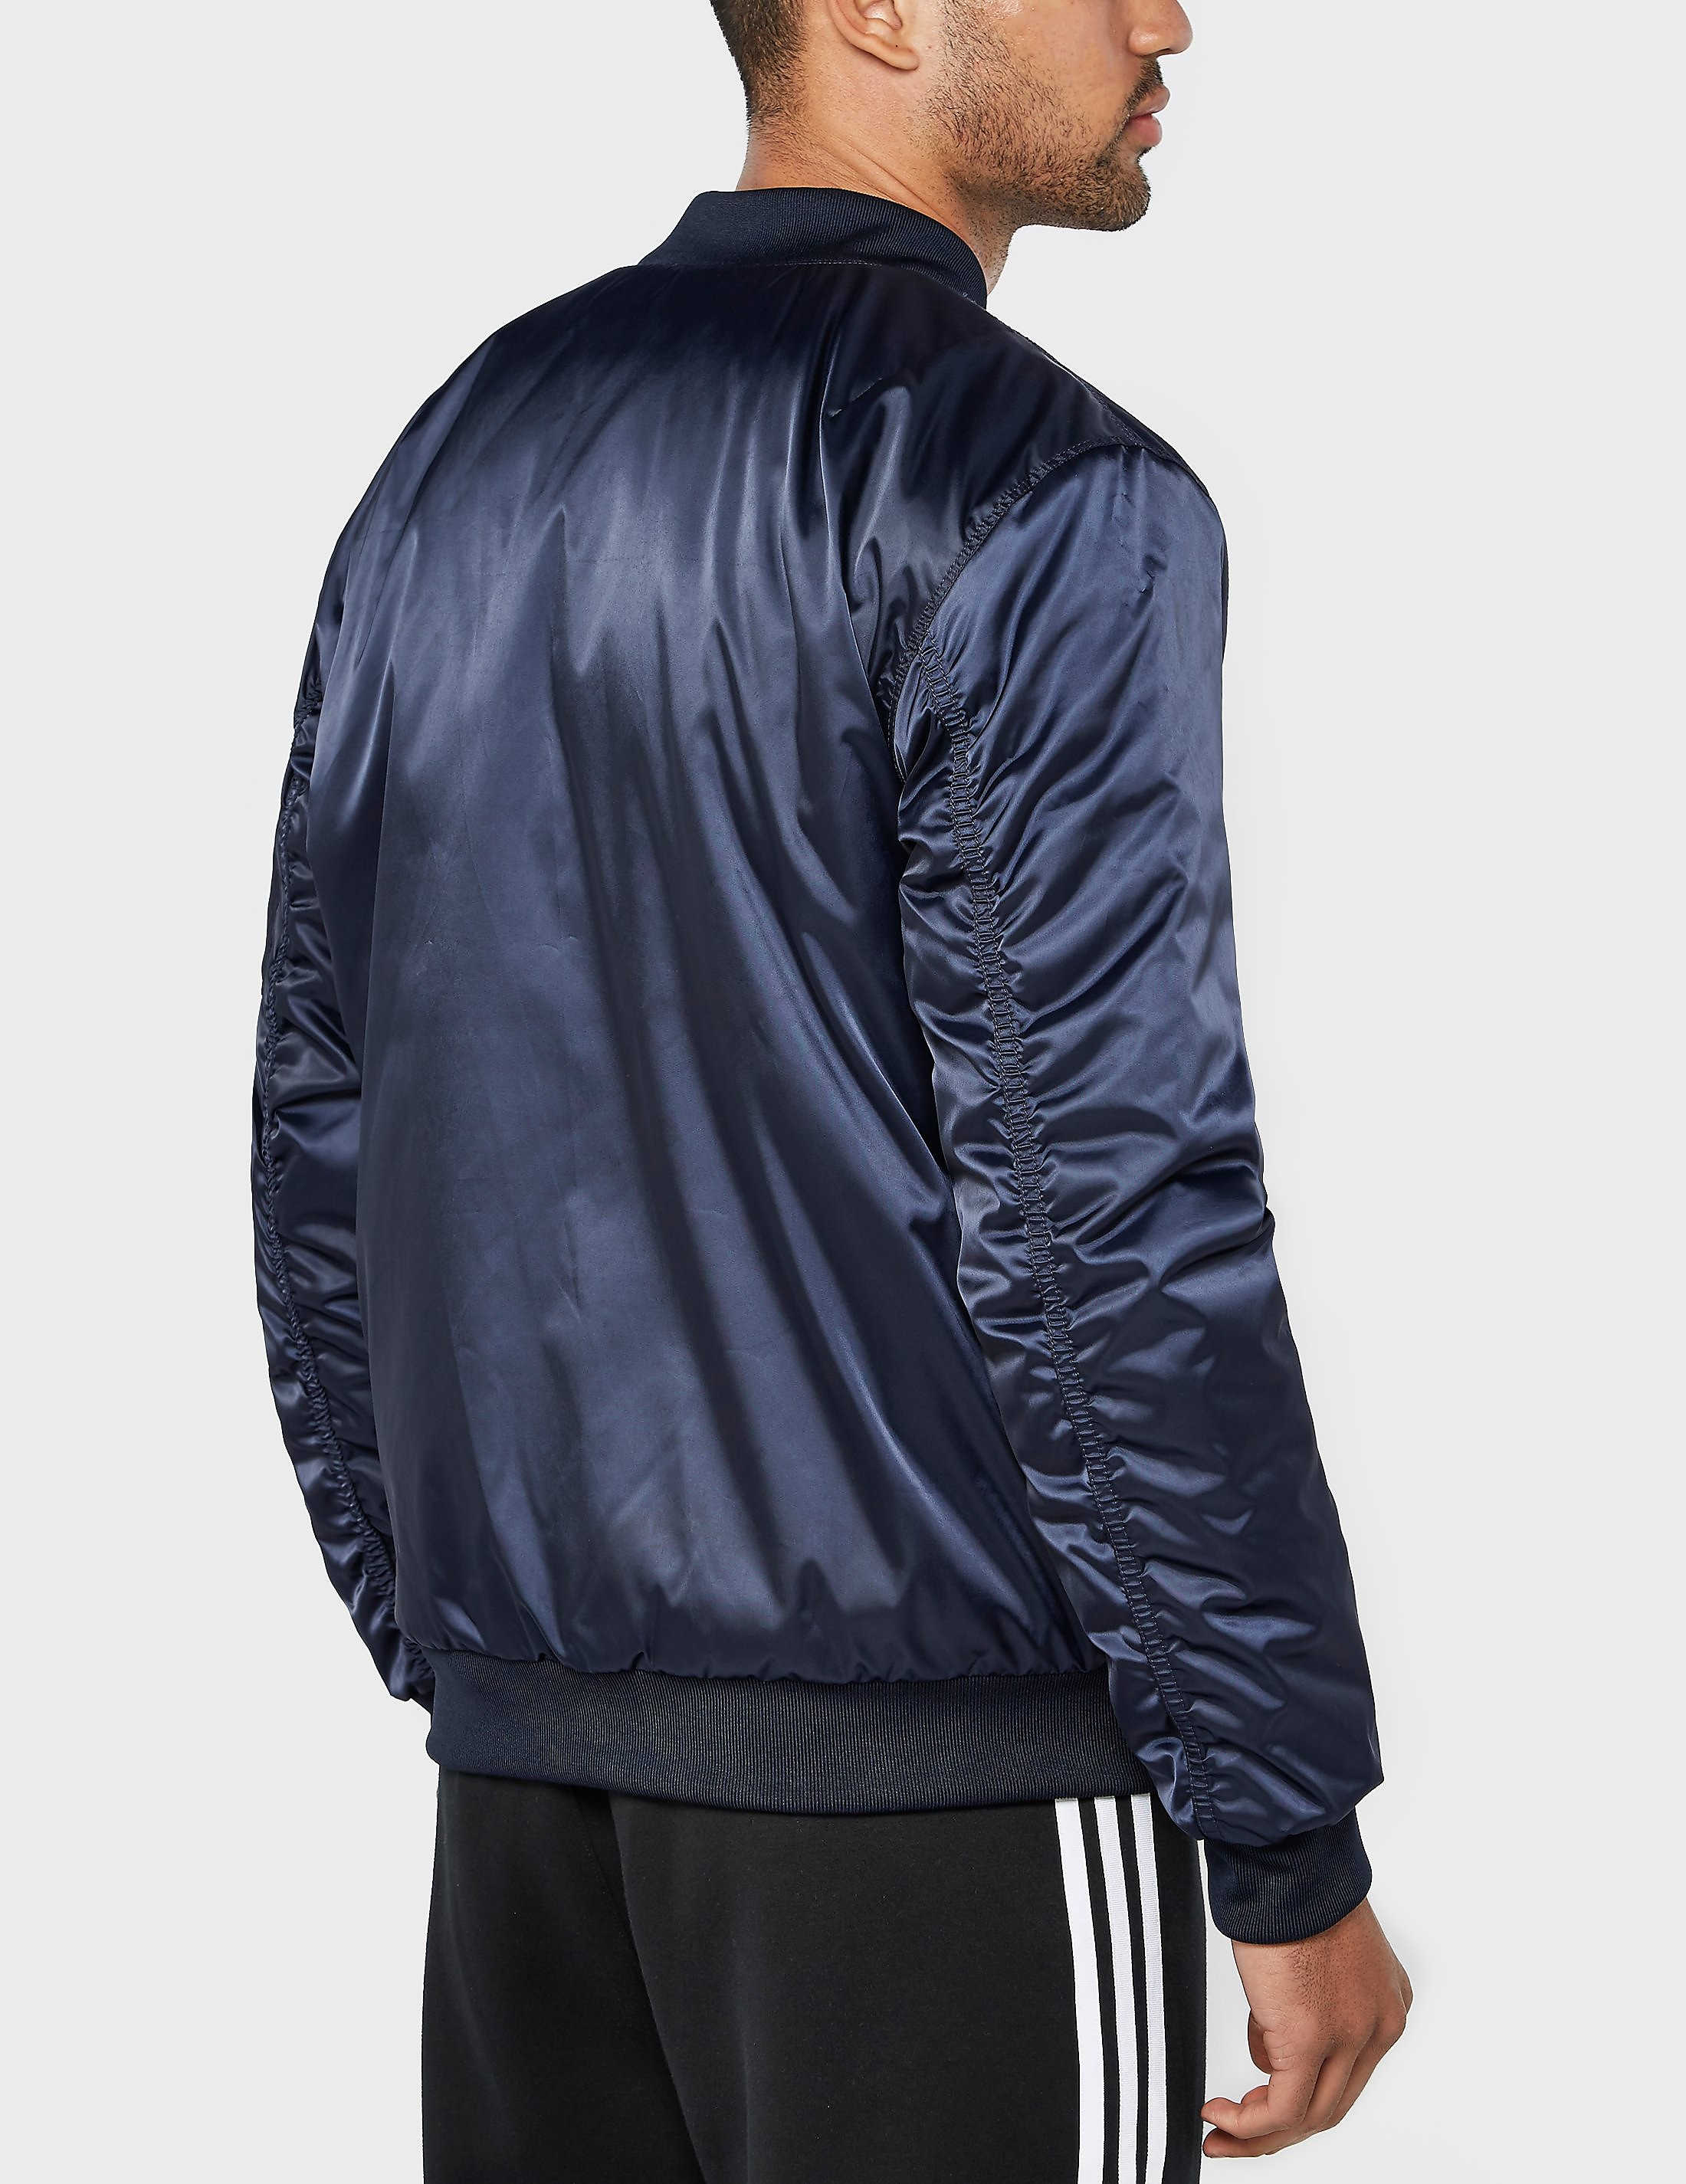 adidas Originals MA1 Superstar Bomber Jacket